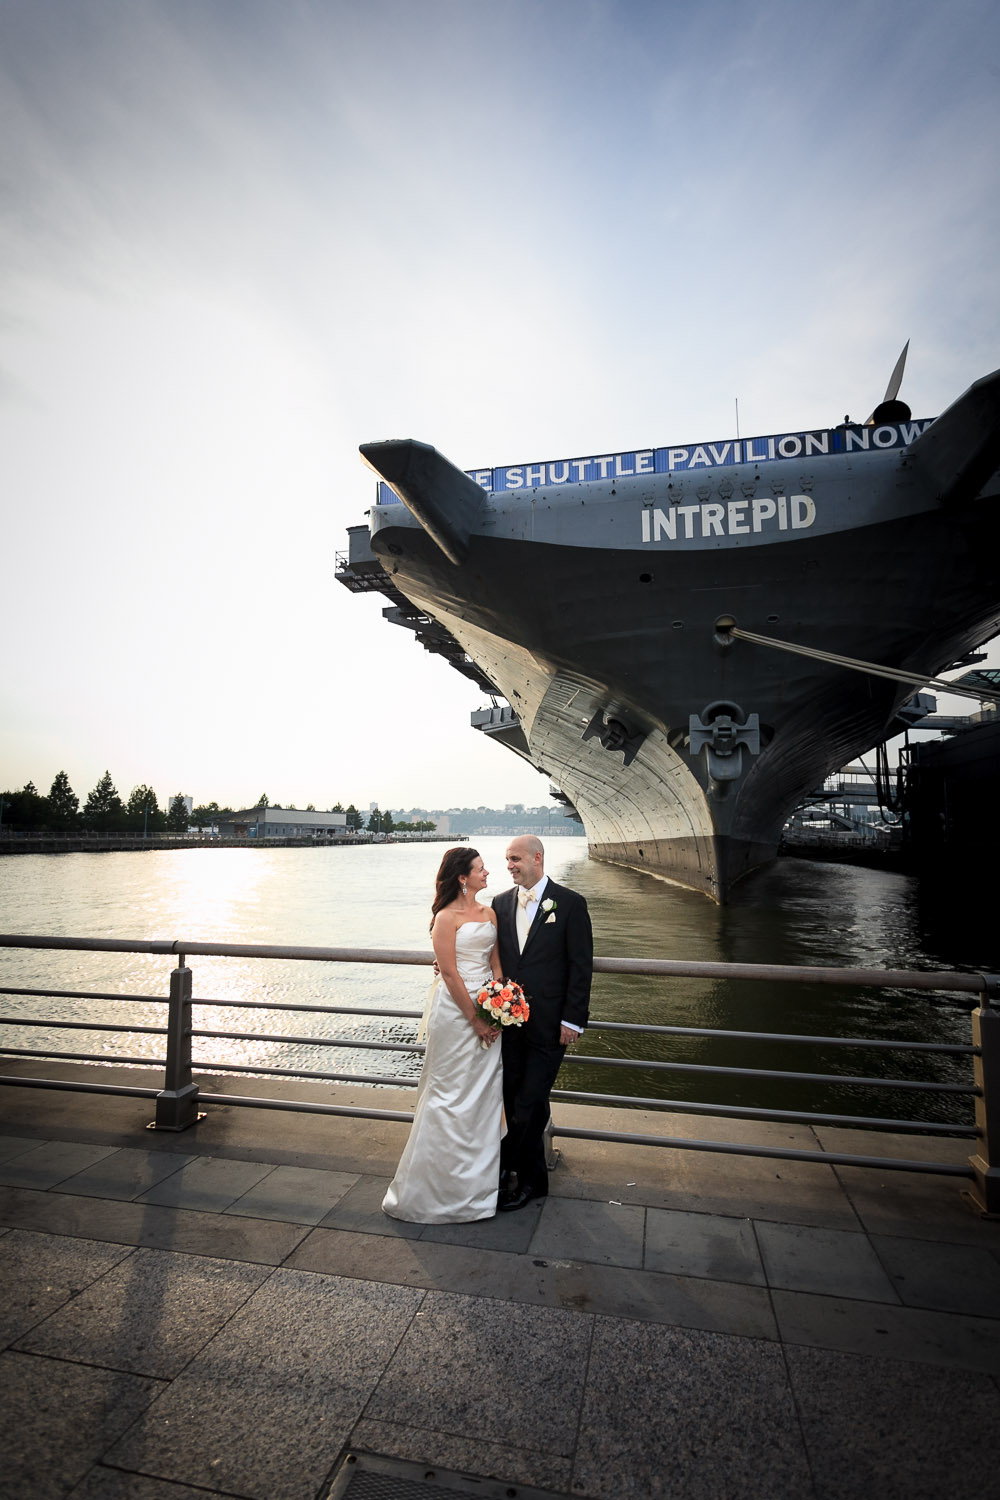 A gorgeous wedding photo of Jane and Larry in front of the Intrepid on the Hudson River.